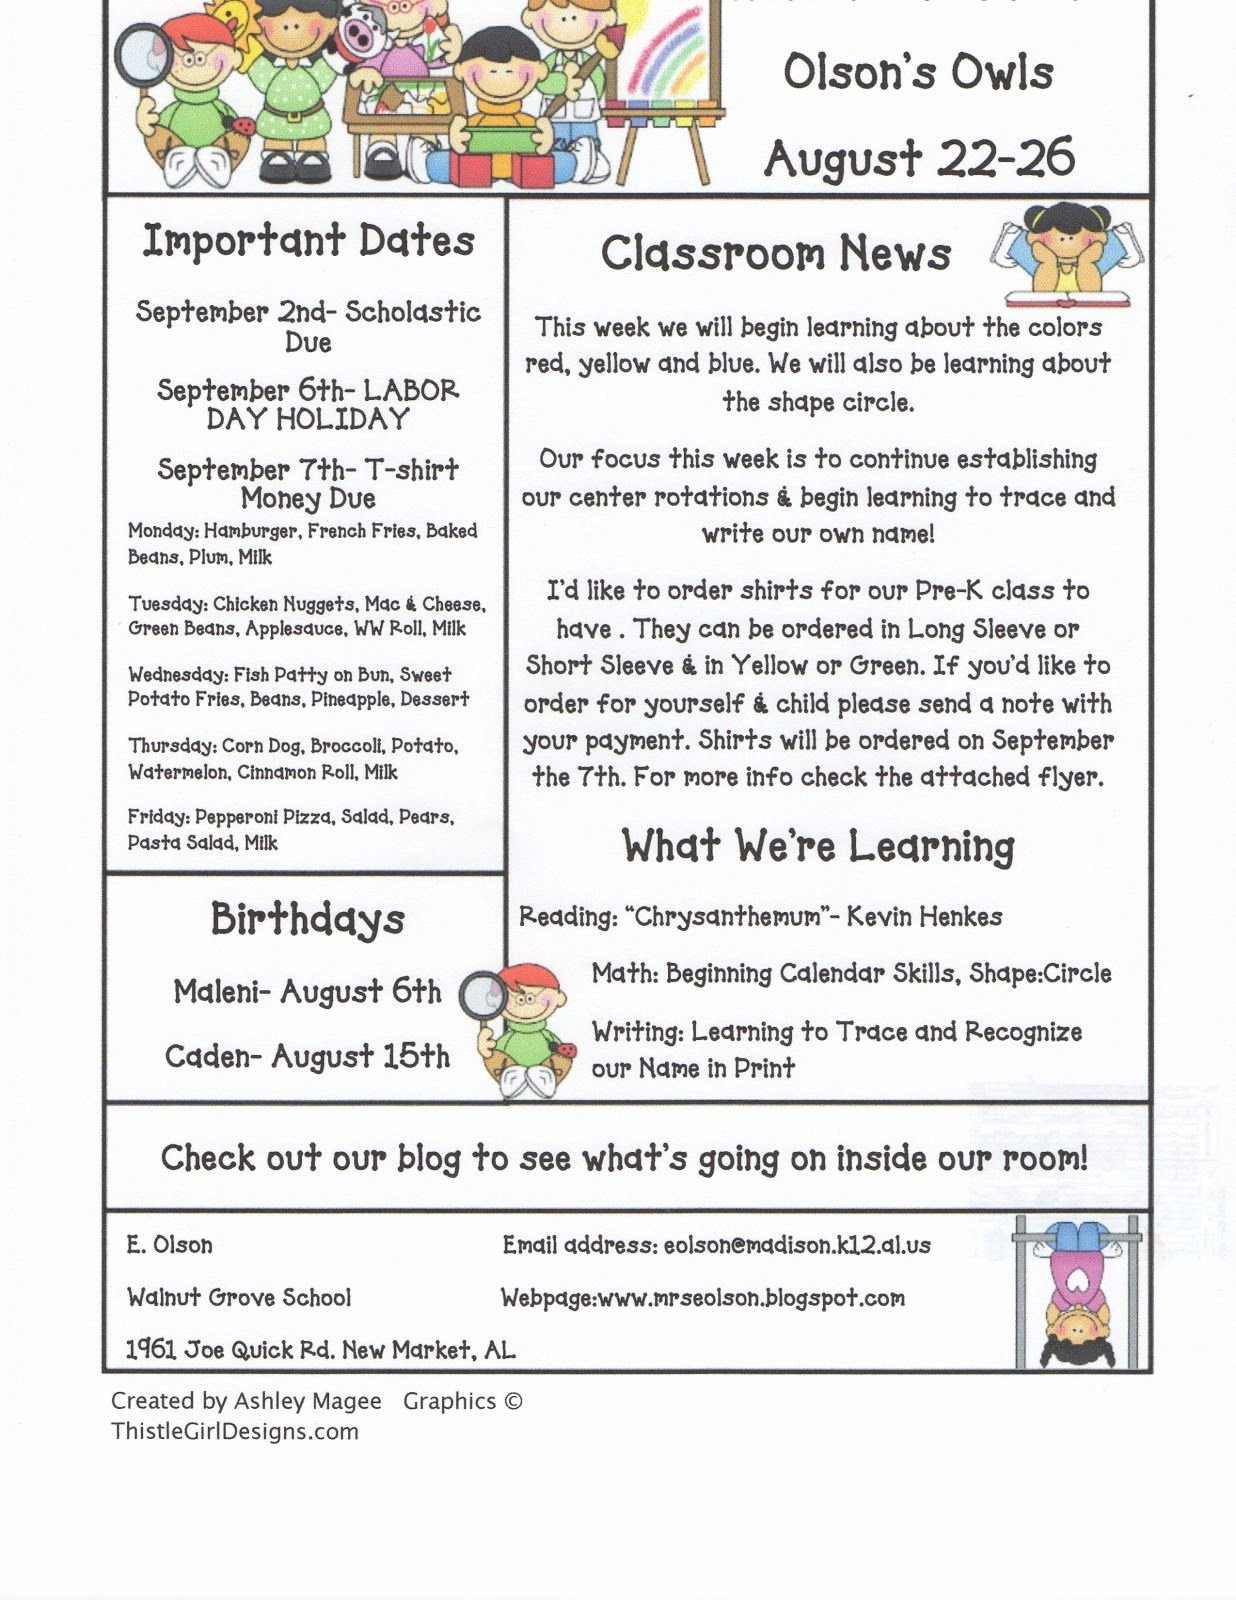 Monthly Newsletter Template for Teachers Luxury December School Newsletter Ideas